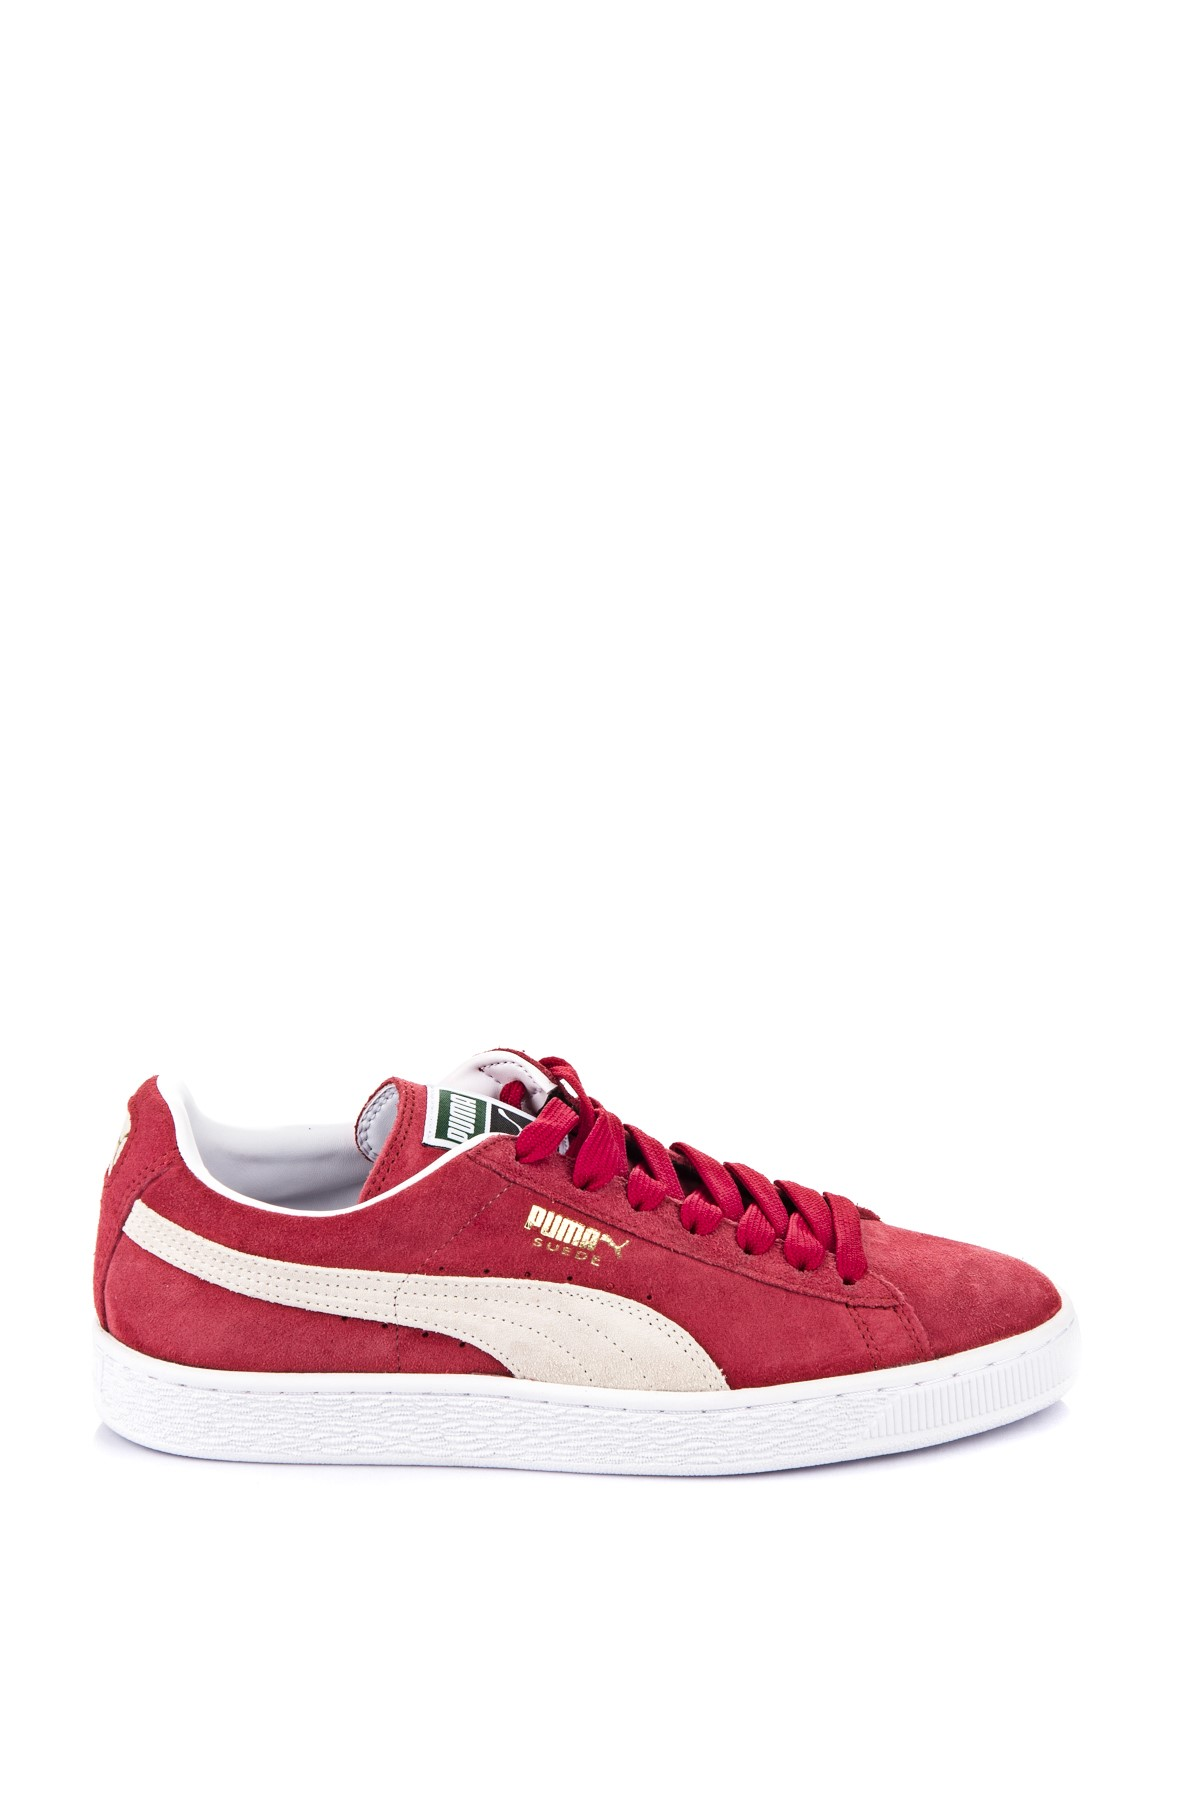 Puma Unisex Ayakkabı - Suede Classic+ Team Regal Red-white 35263405